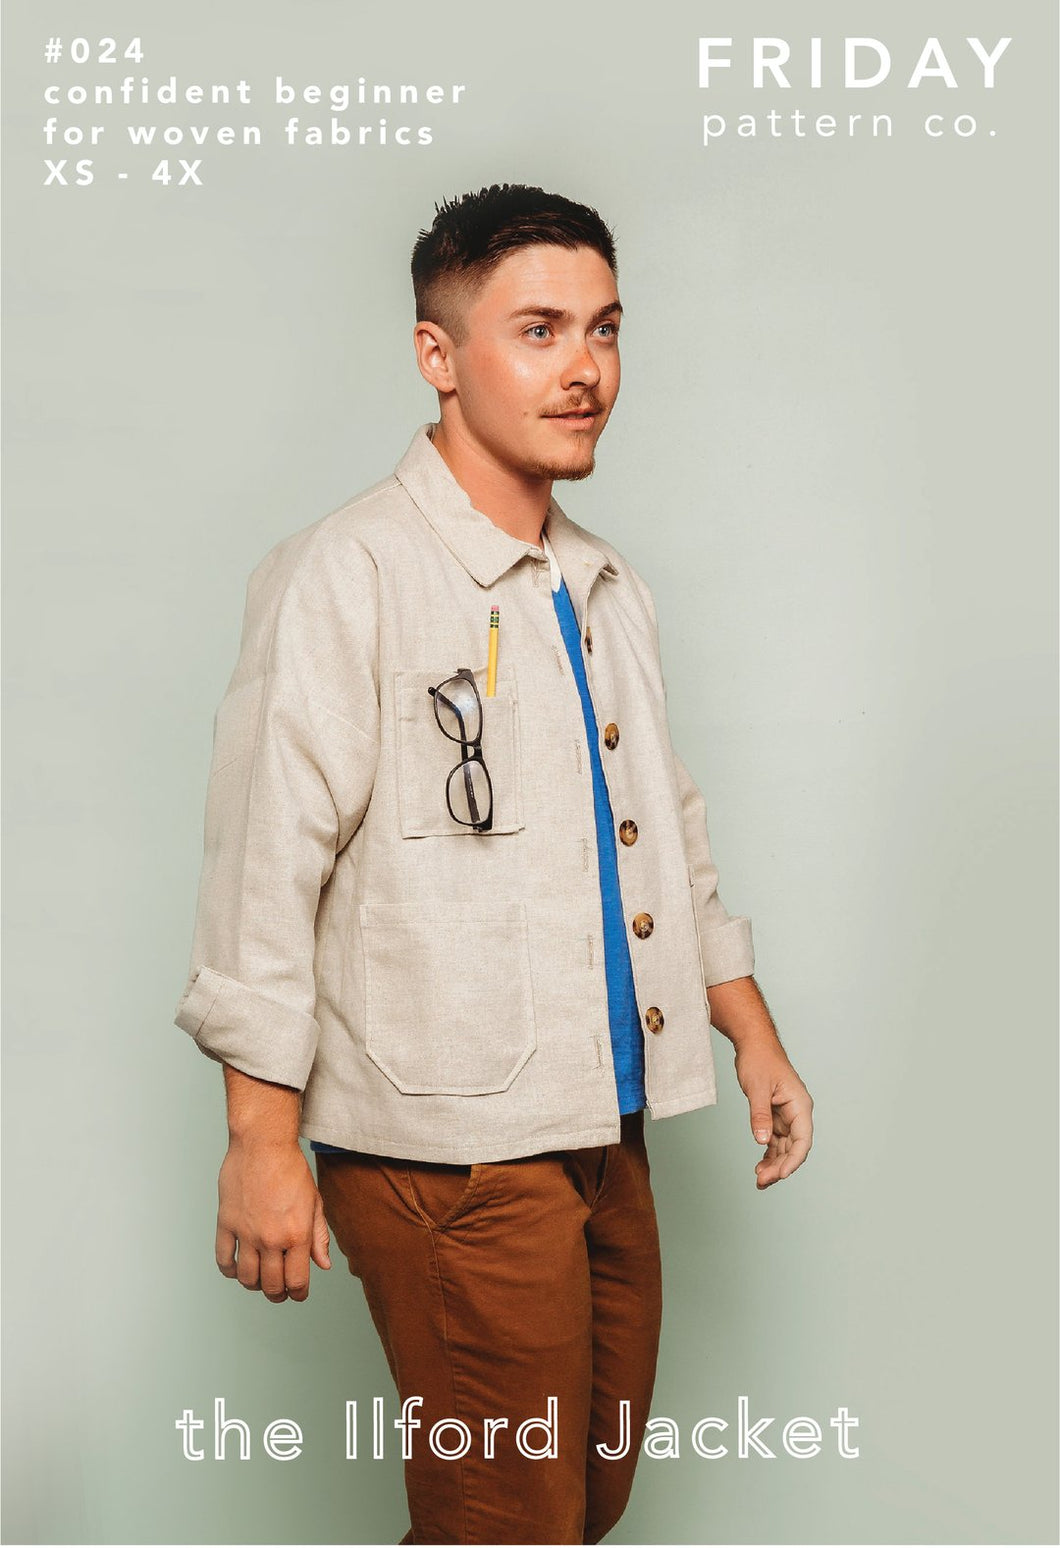 Ilford Jacket - Friday Pattern Company